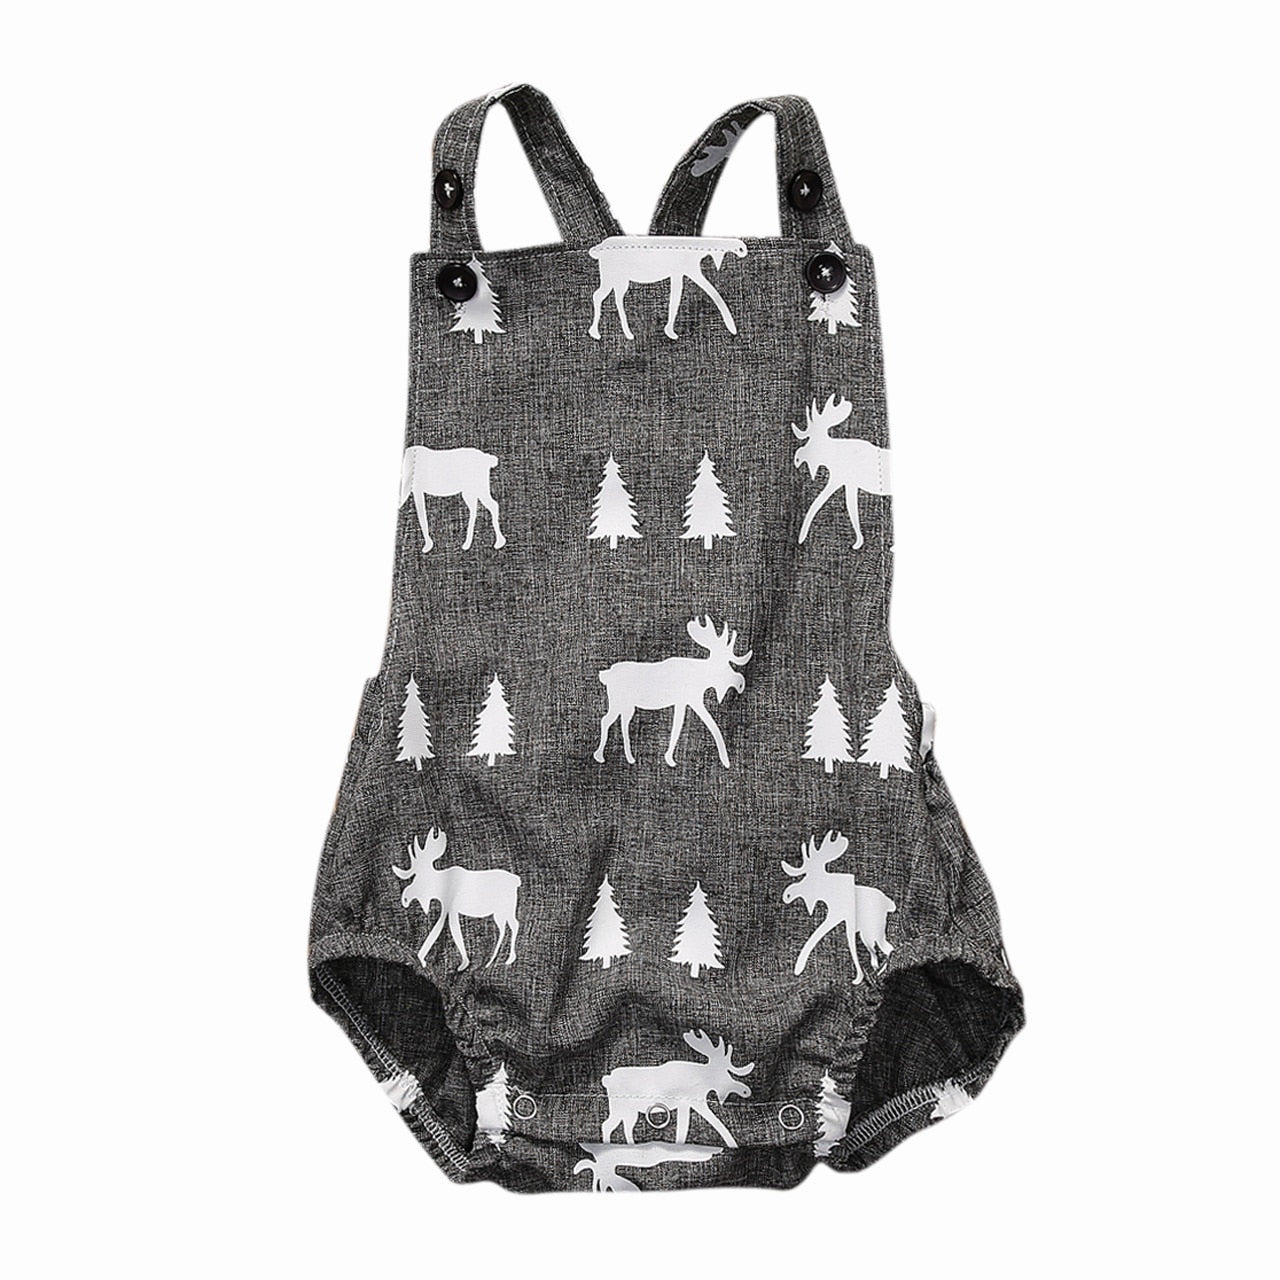 2018 Summer Cute Toddler Baby Boys Gray Deer Jumpsuit Bodysuit Outfits Sunsuit Casual Clothes-eosegal